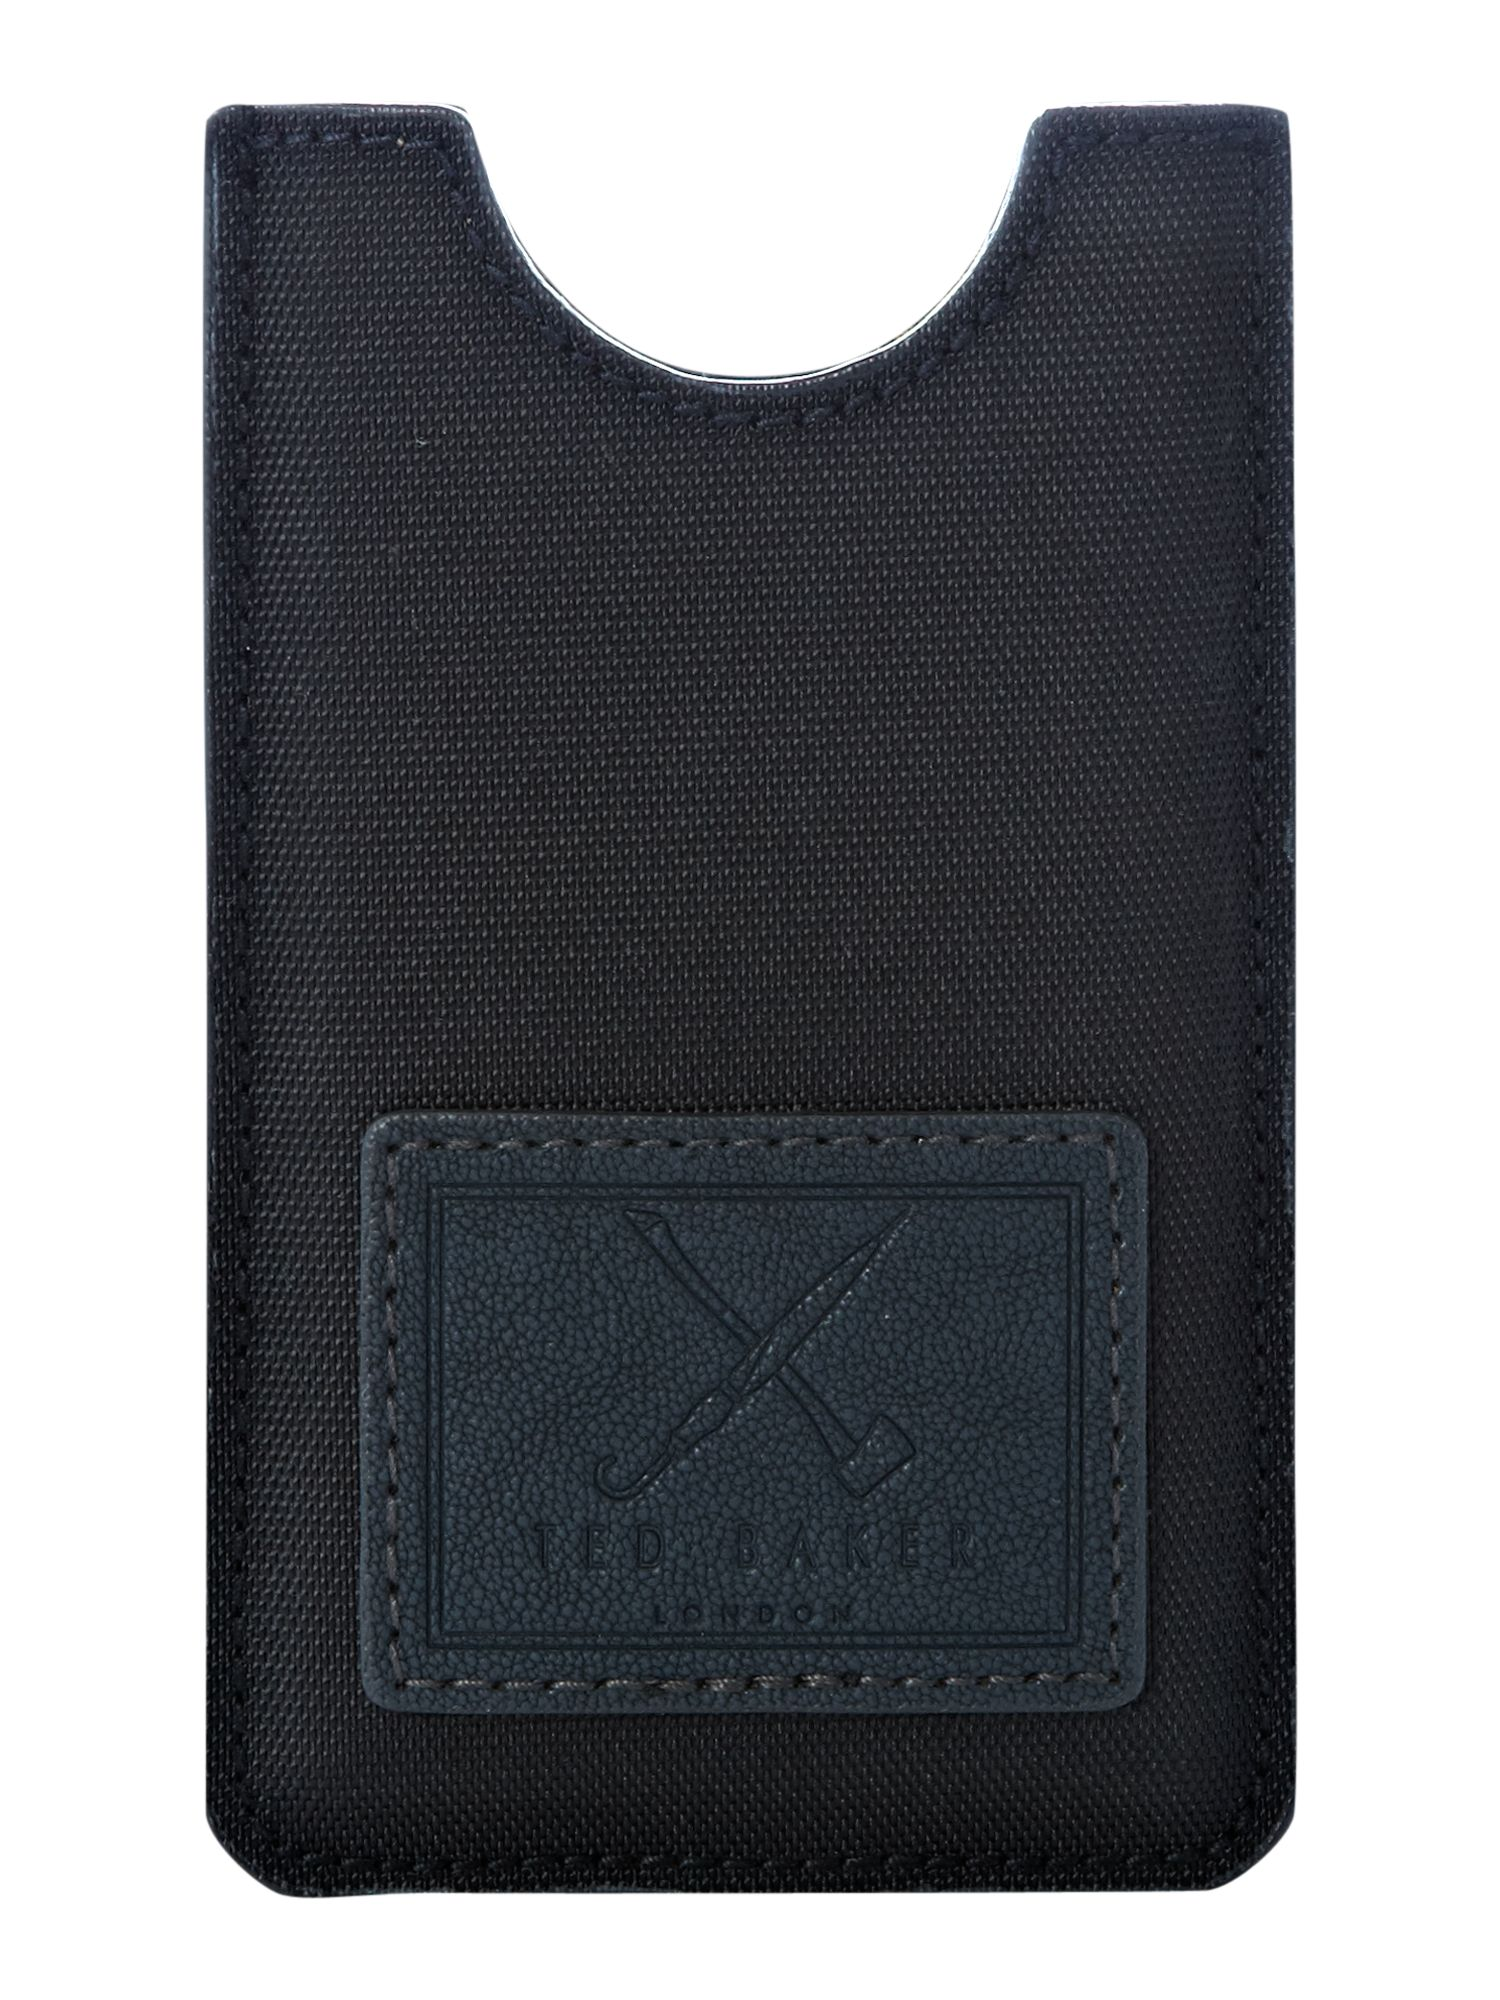 Panelled smartphone case